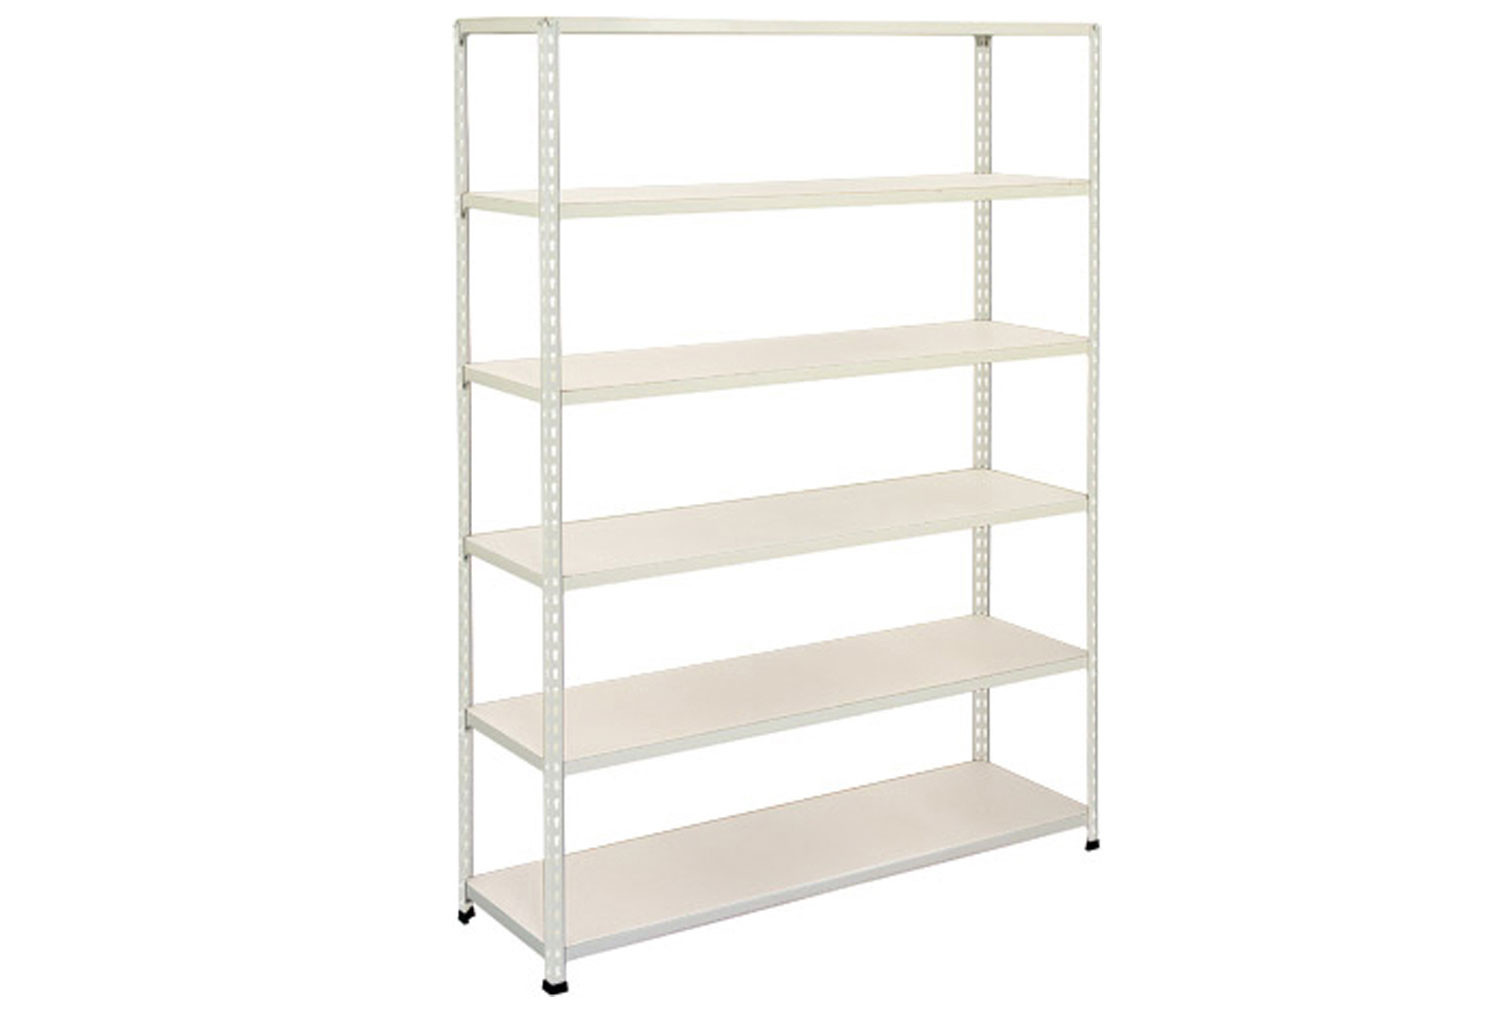 Rapid 2 Shelving With 6 Melamine Shelves 1525wx1600h (Grey)